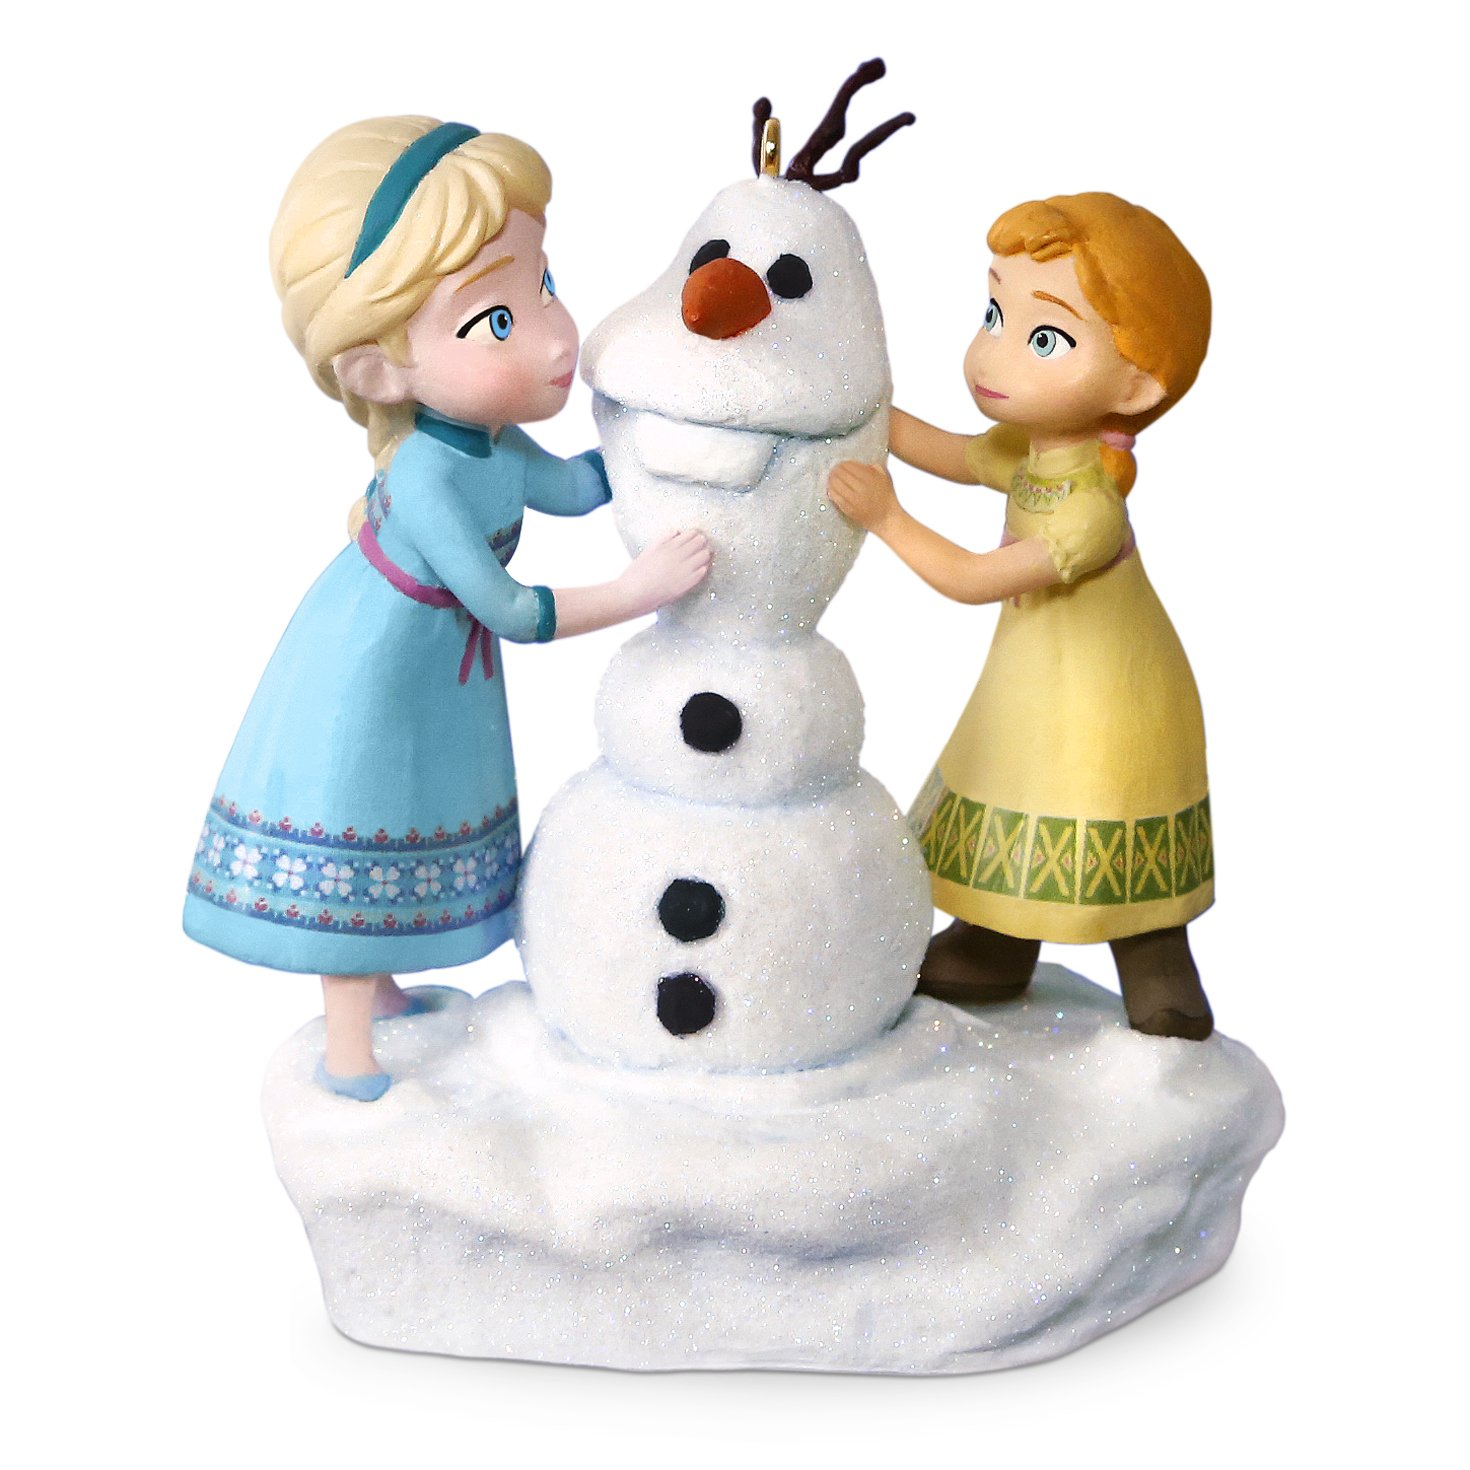 Frozen Anna and Elsa Build a Snowman Musical Ornament